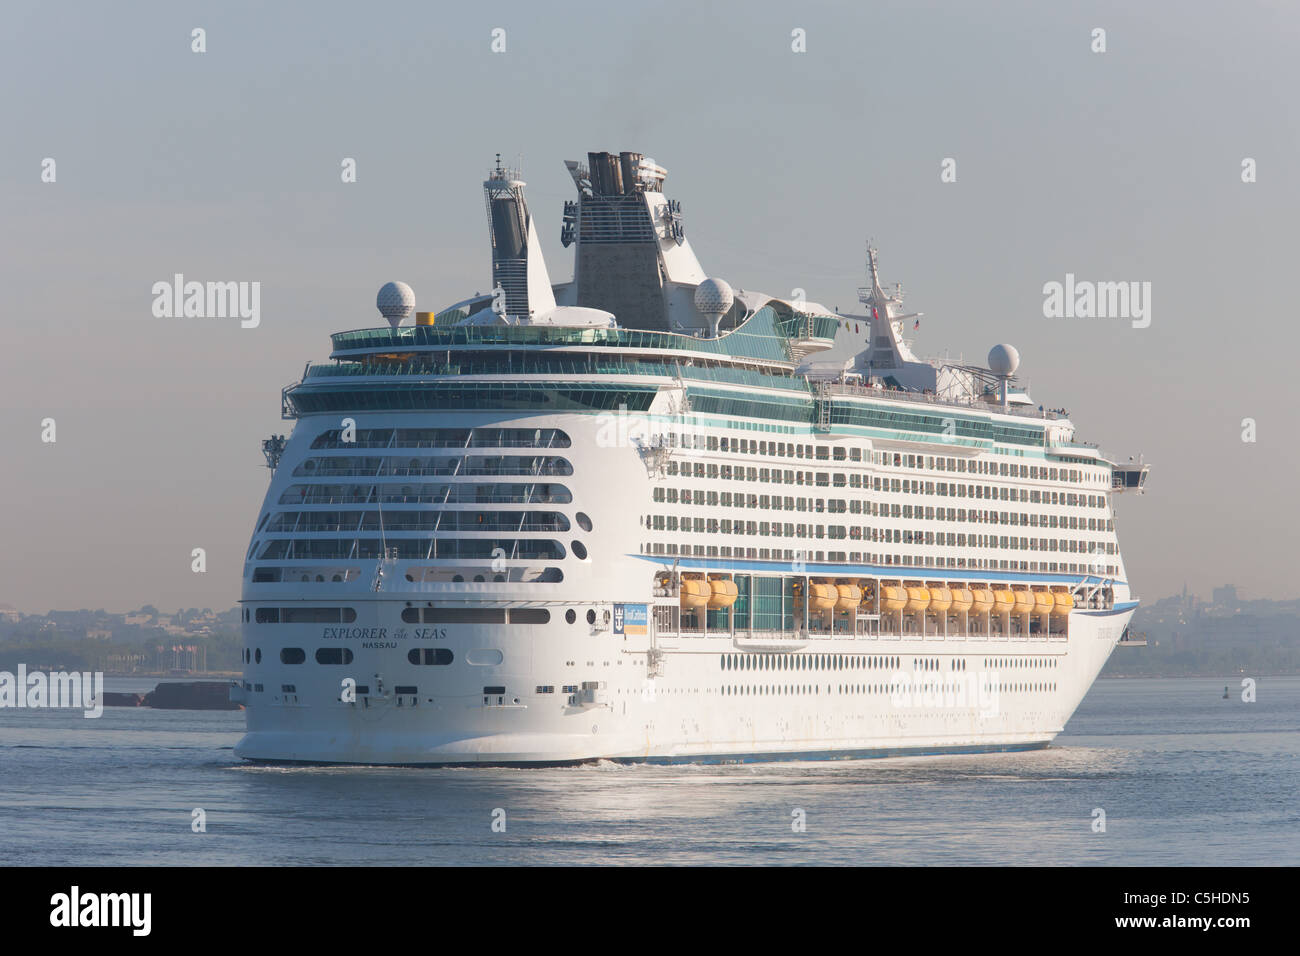 royal caribbean cruise ship explorer of the seas in new york harbor stock photo royalty free